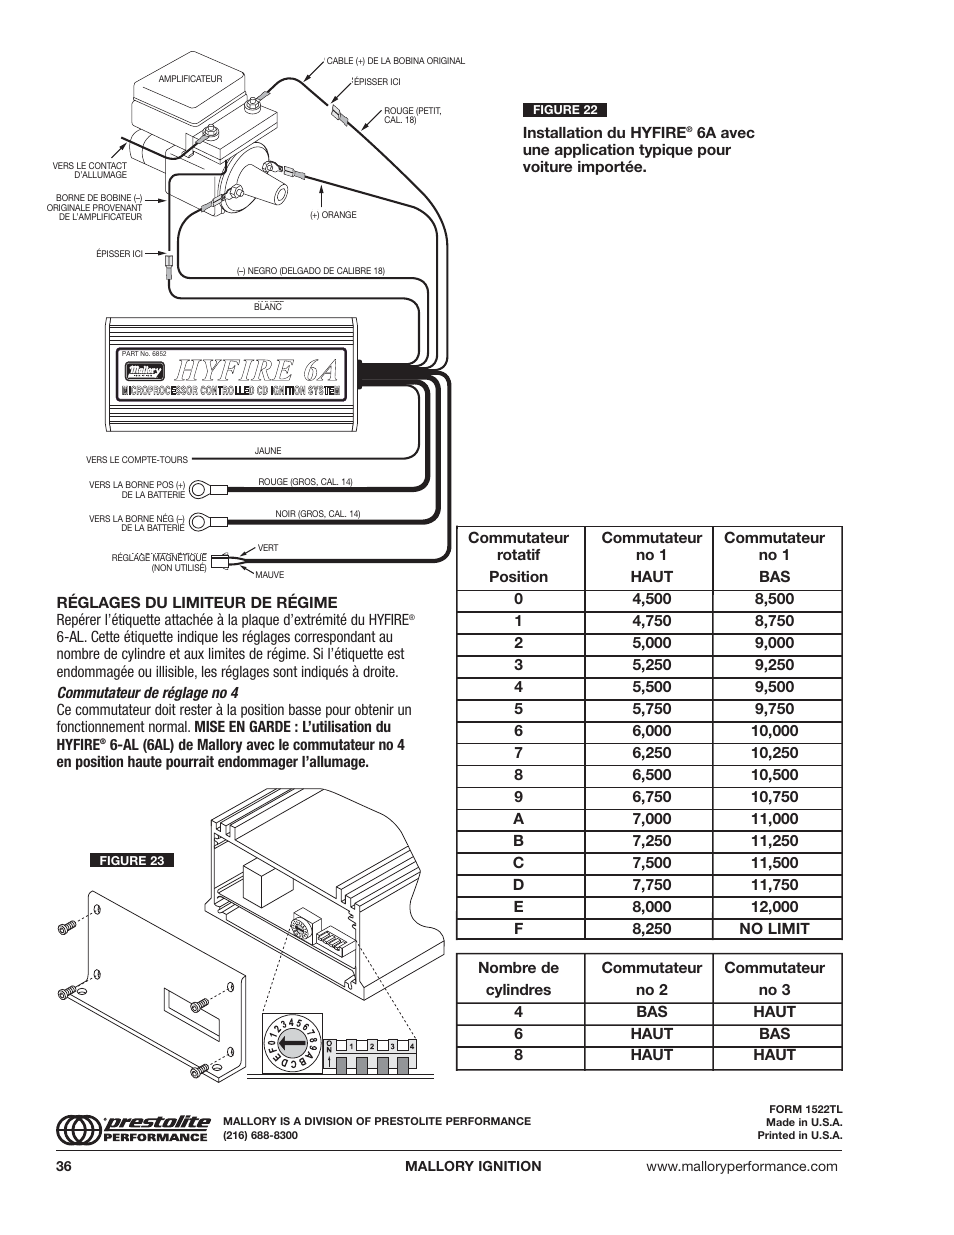 Mallory Ignition Wiring Diagram Solutions Electronic Distributor Hyfire